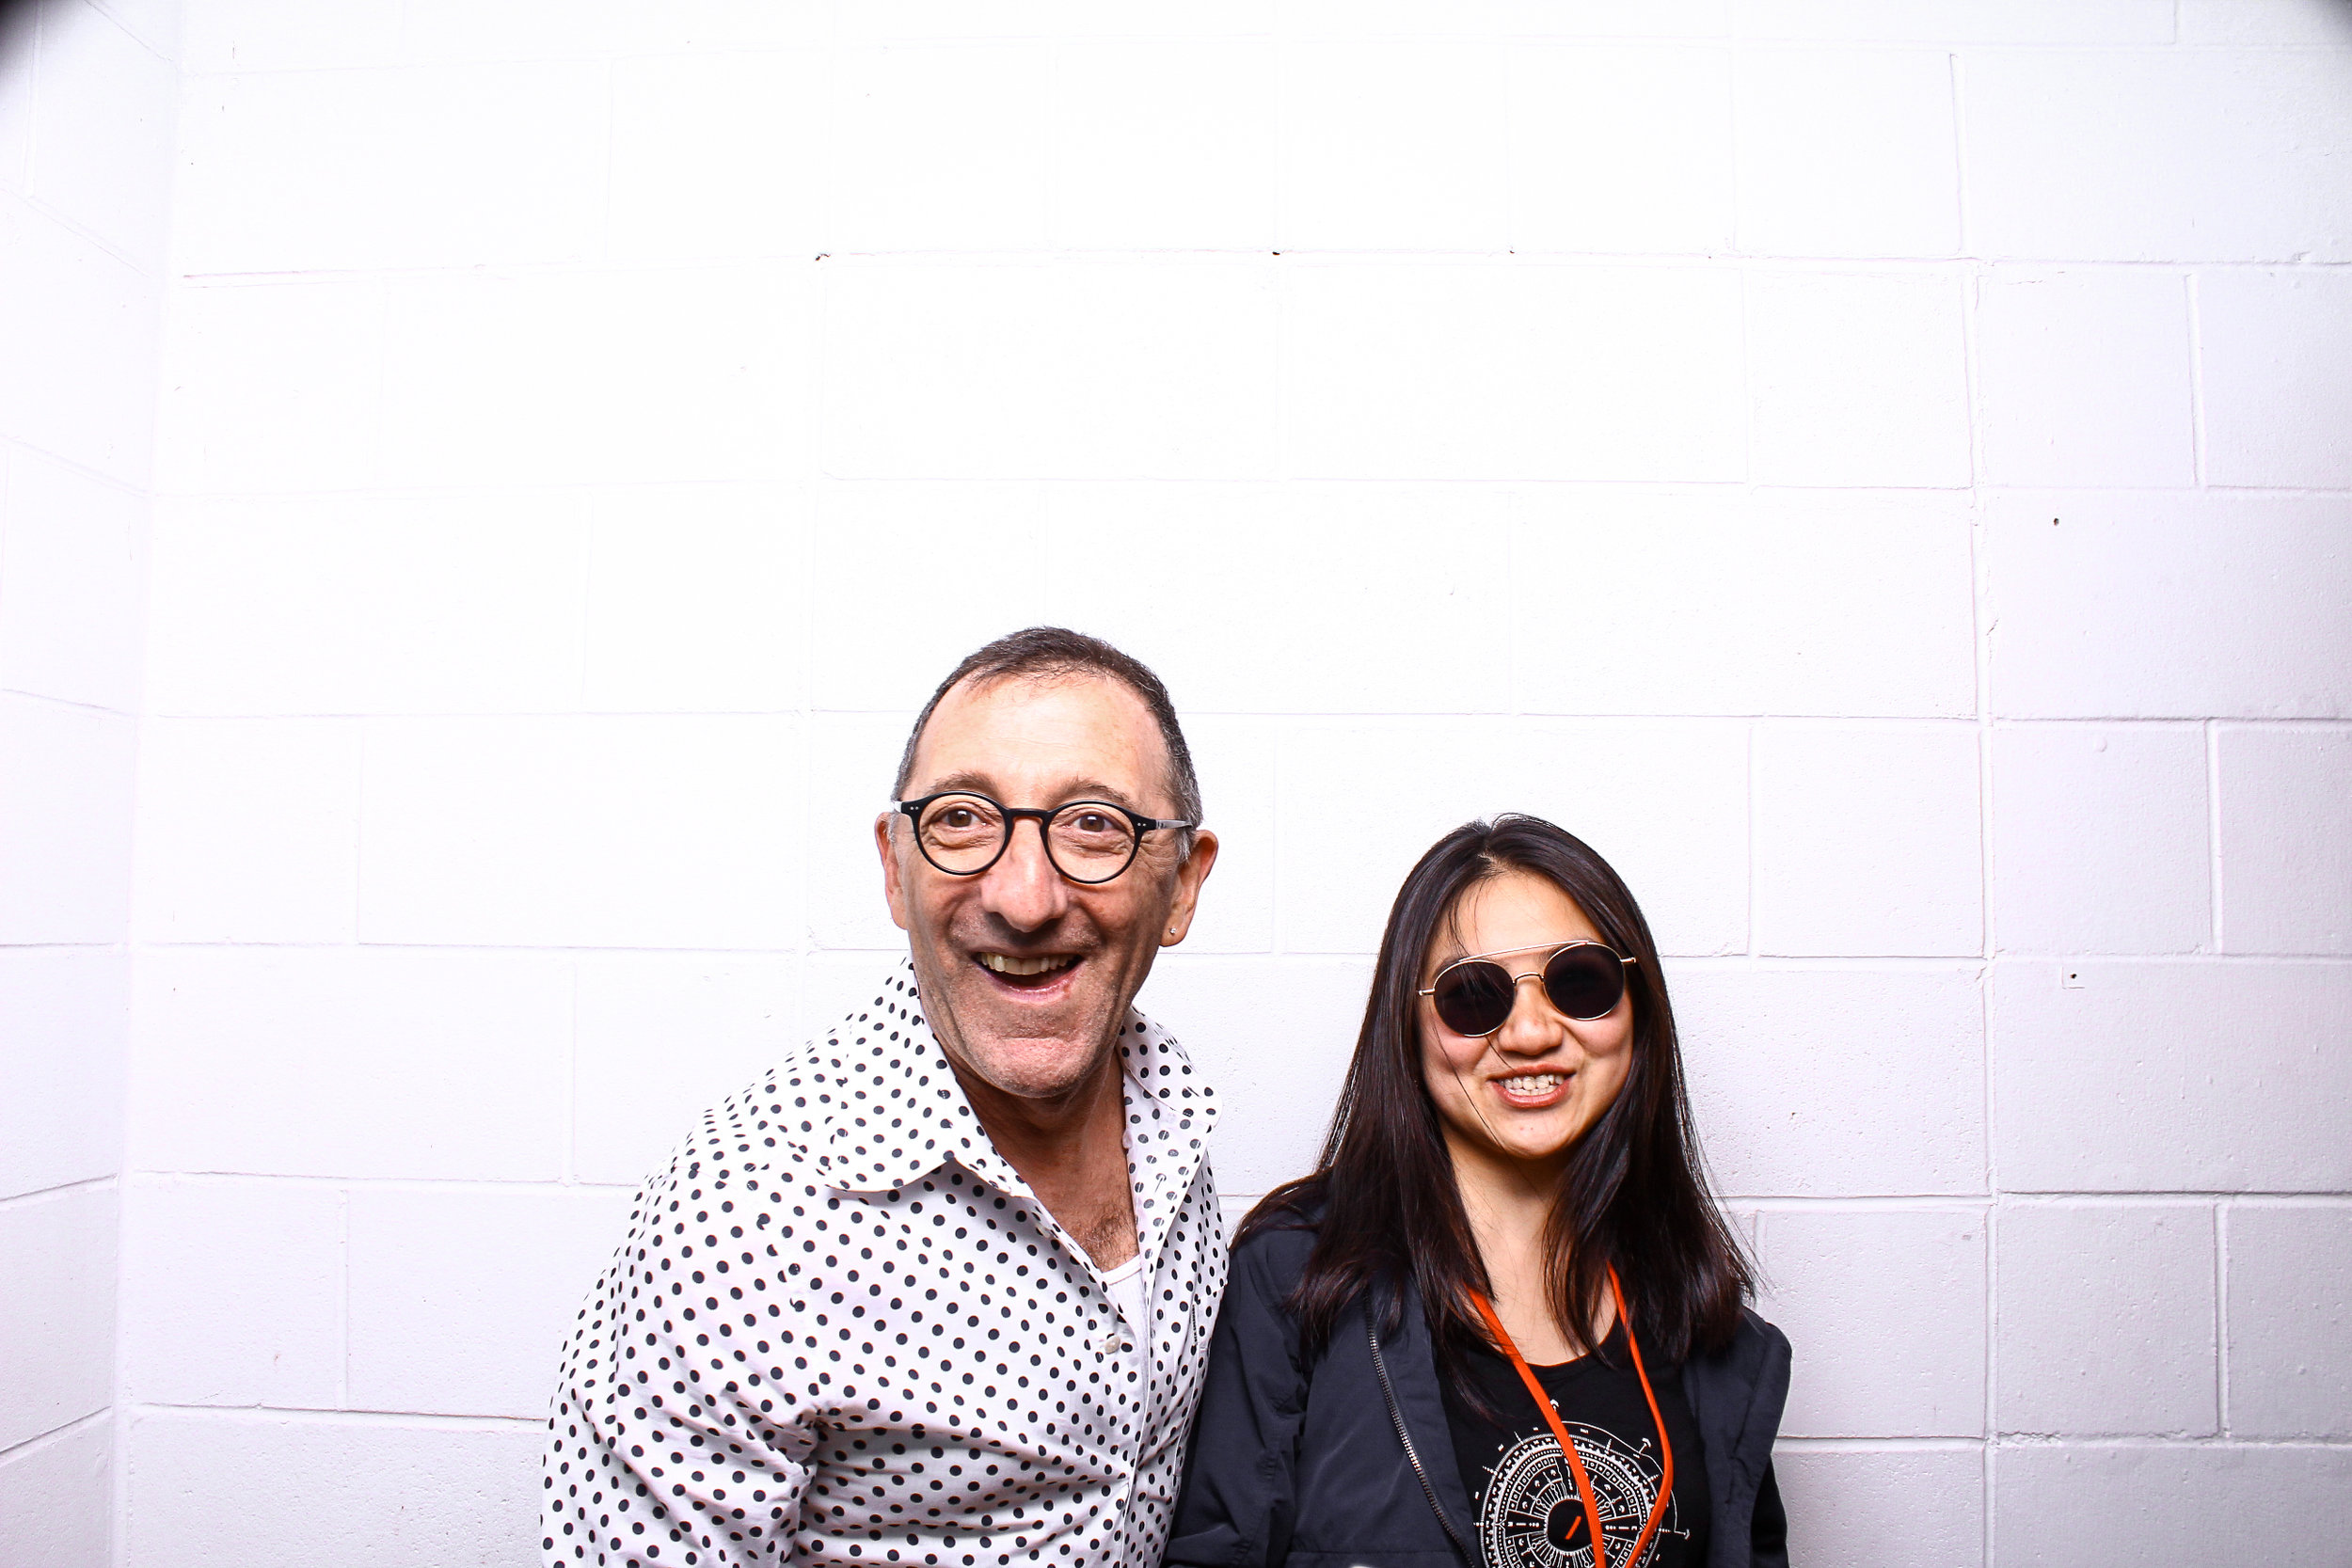 SMPB_TedxAuckland_Afterparty (152 of 213).jpg